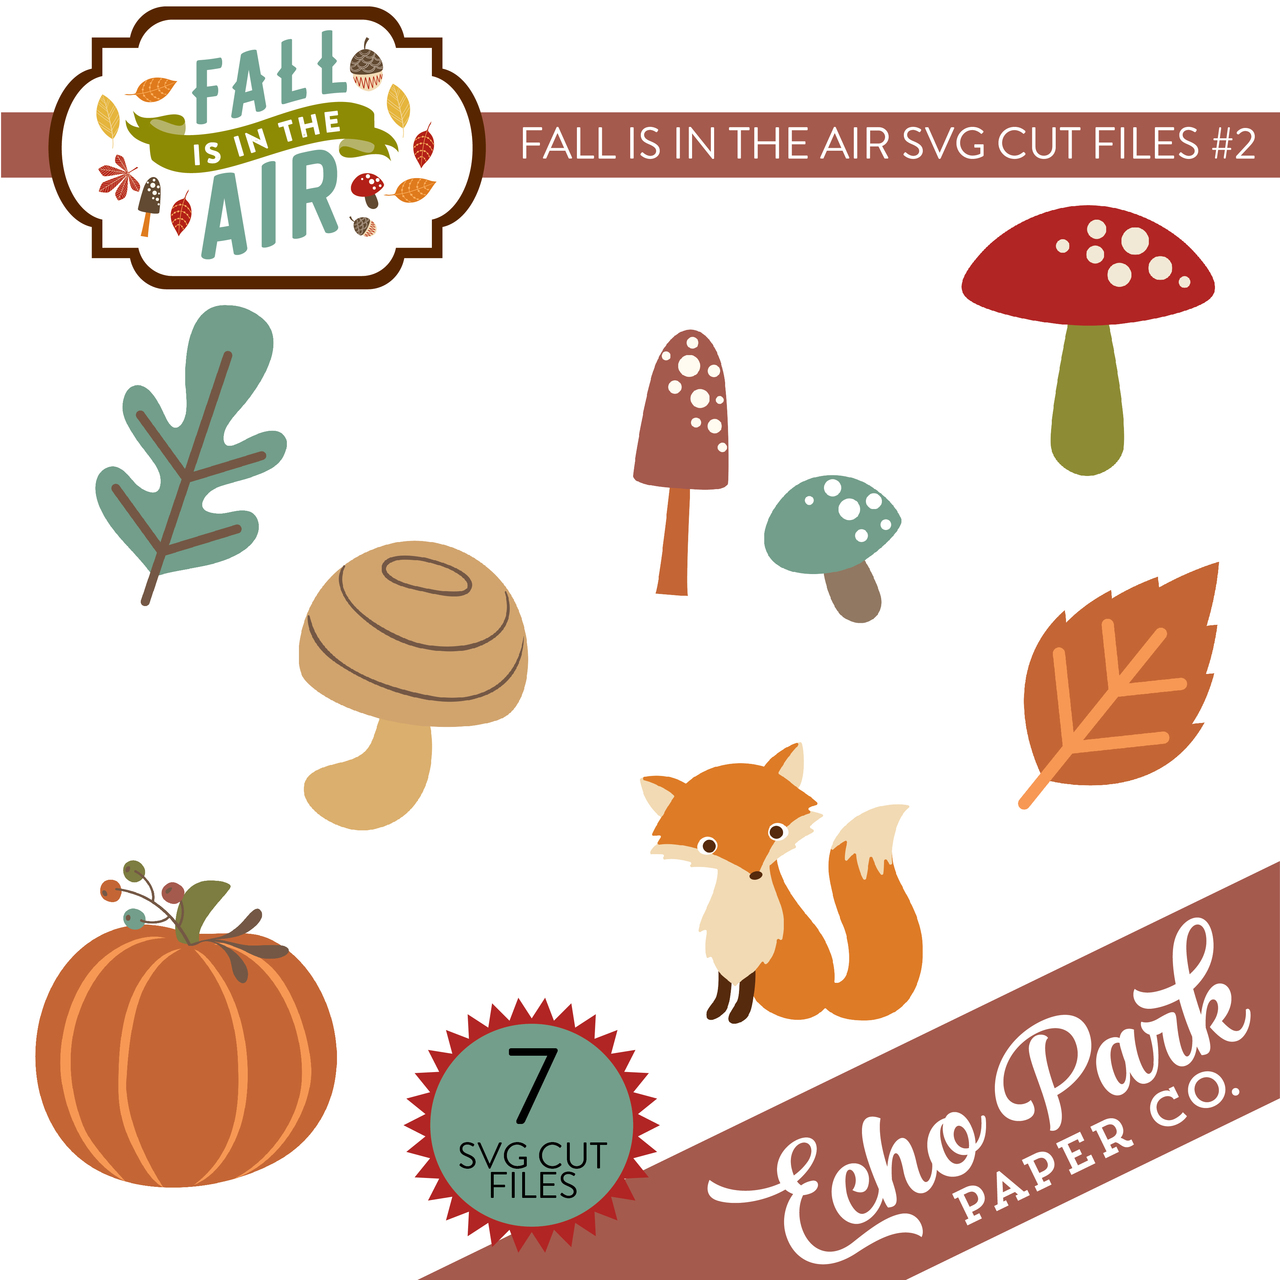 Fall Is In The Air SVG Cut Files #2